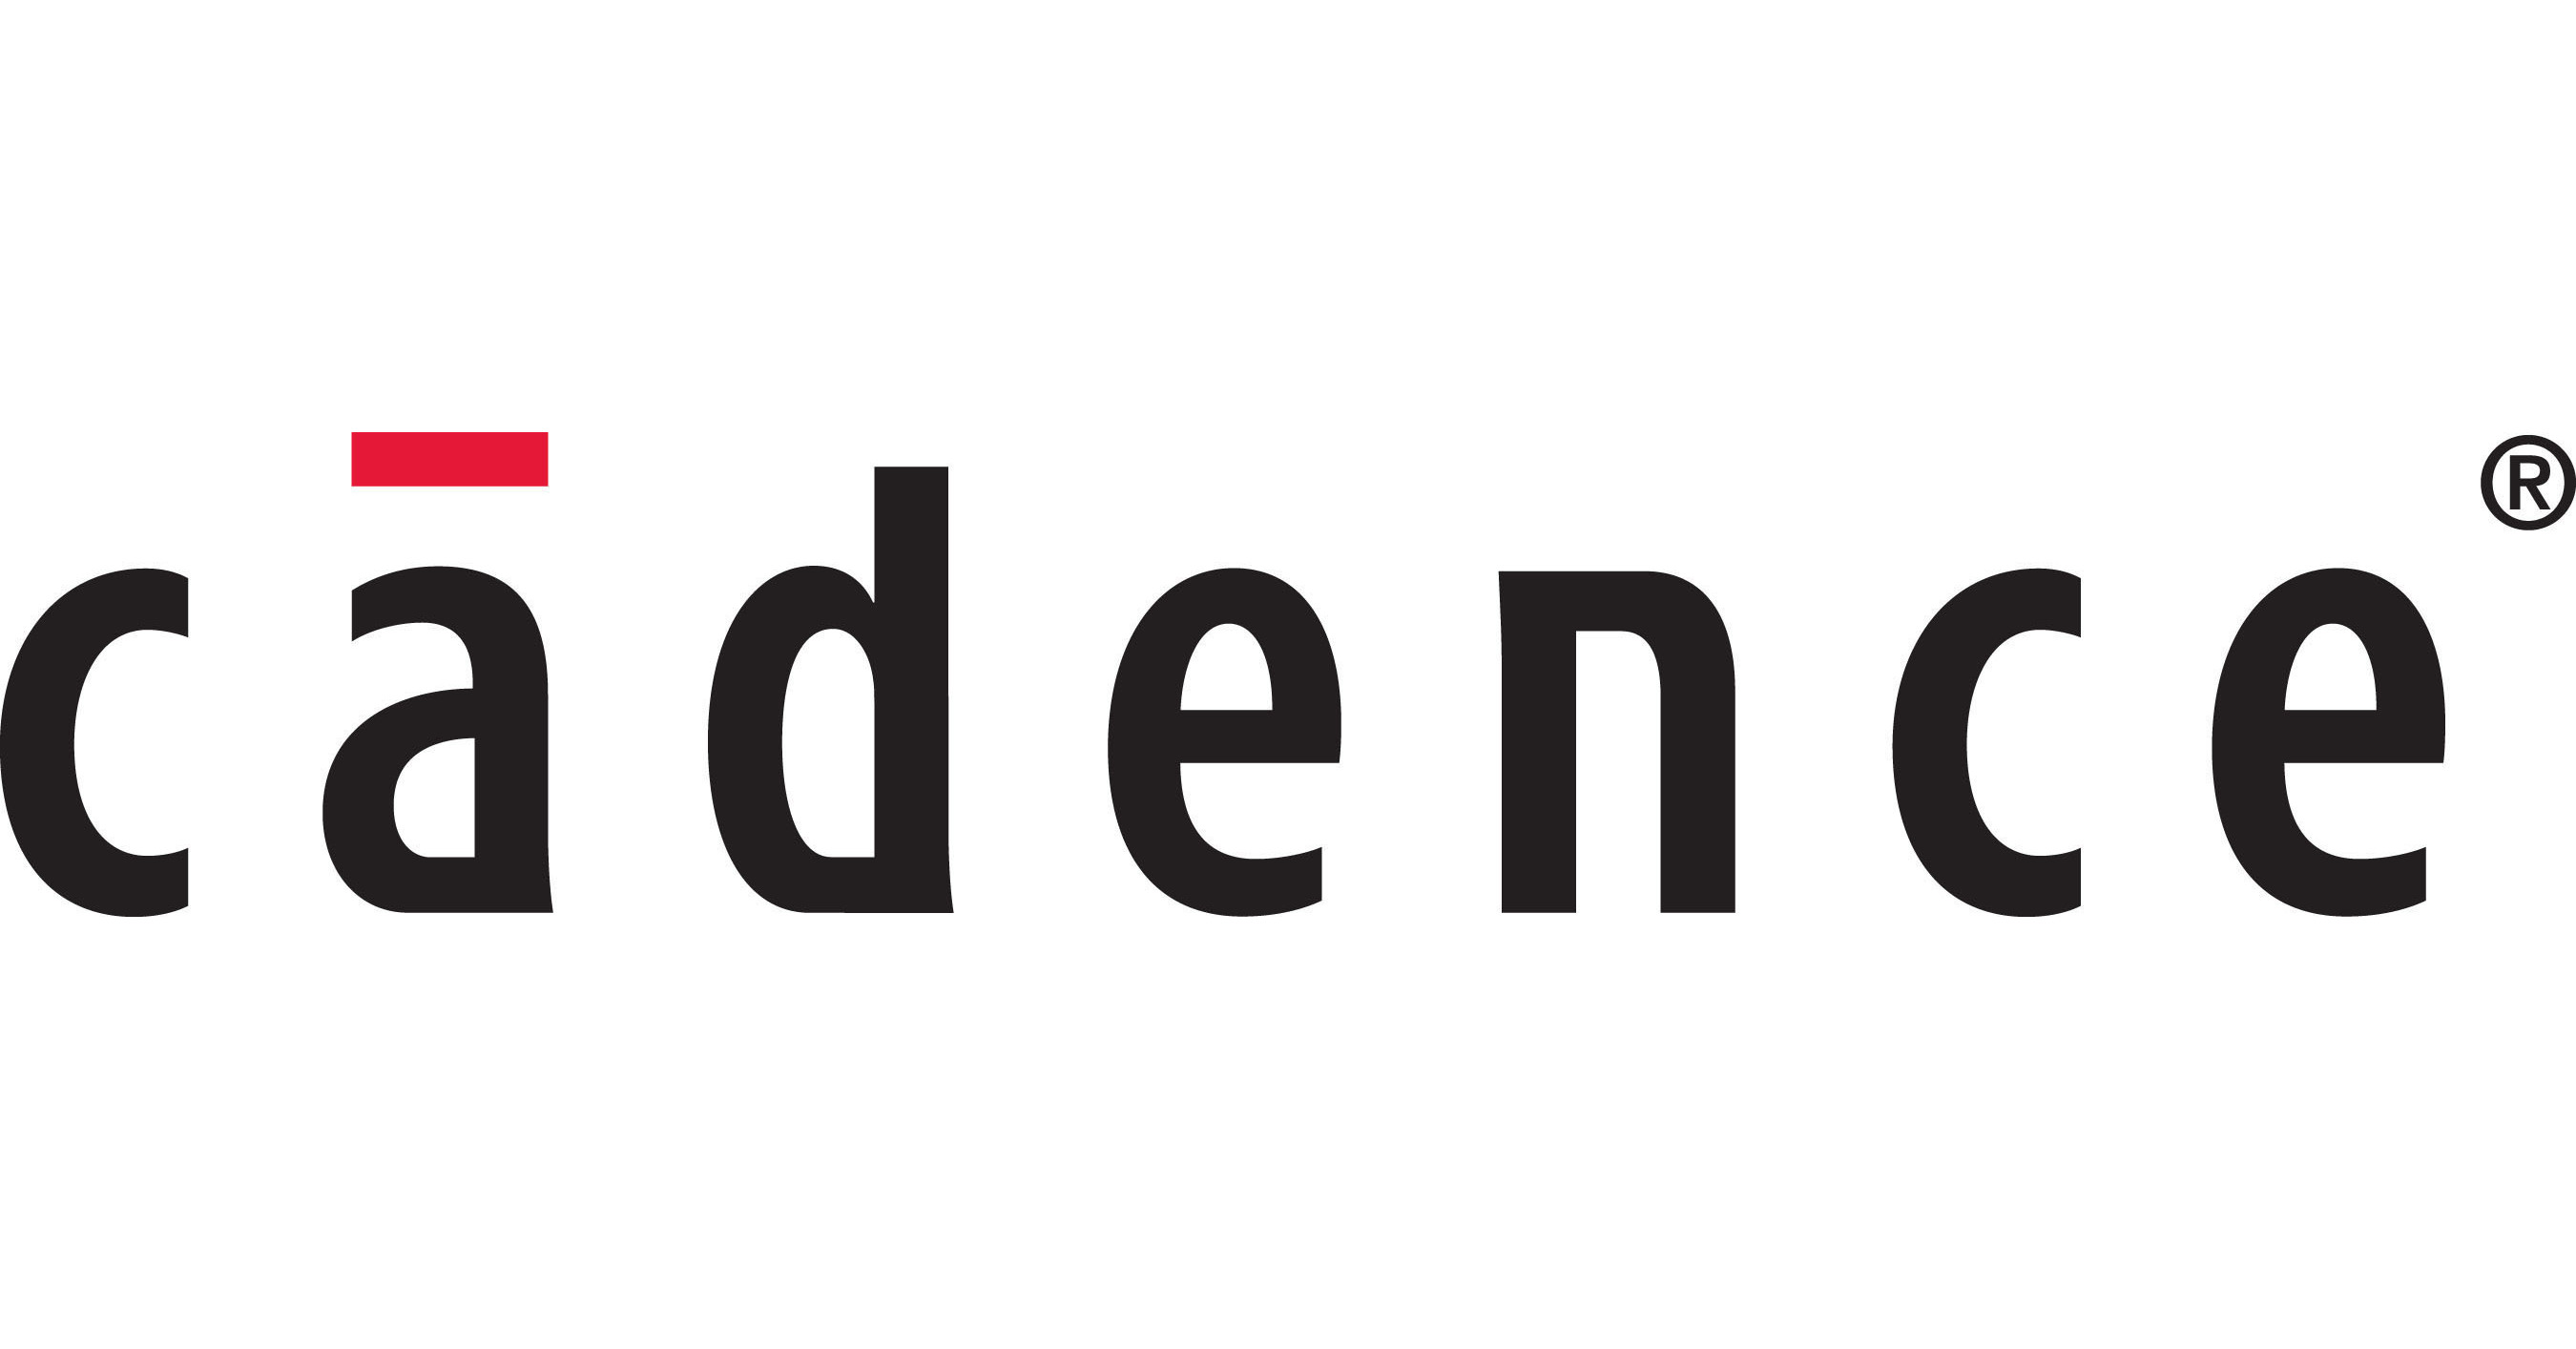 cadence genus synthesis solution enables fuji xerox to improve multi